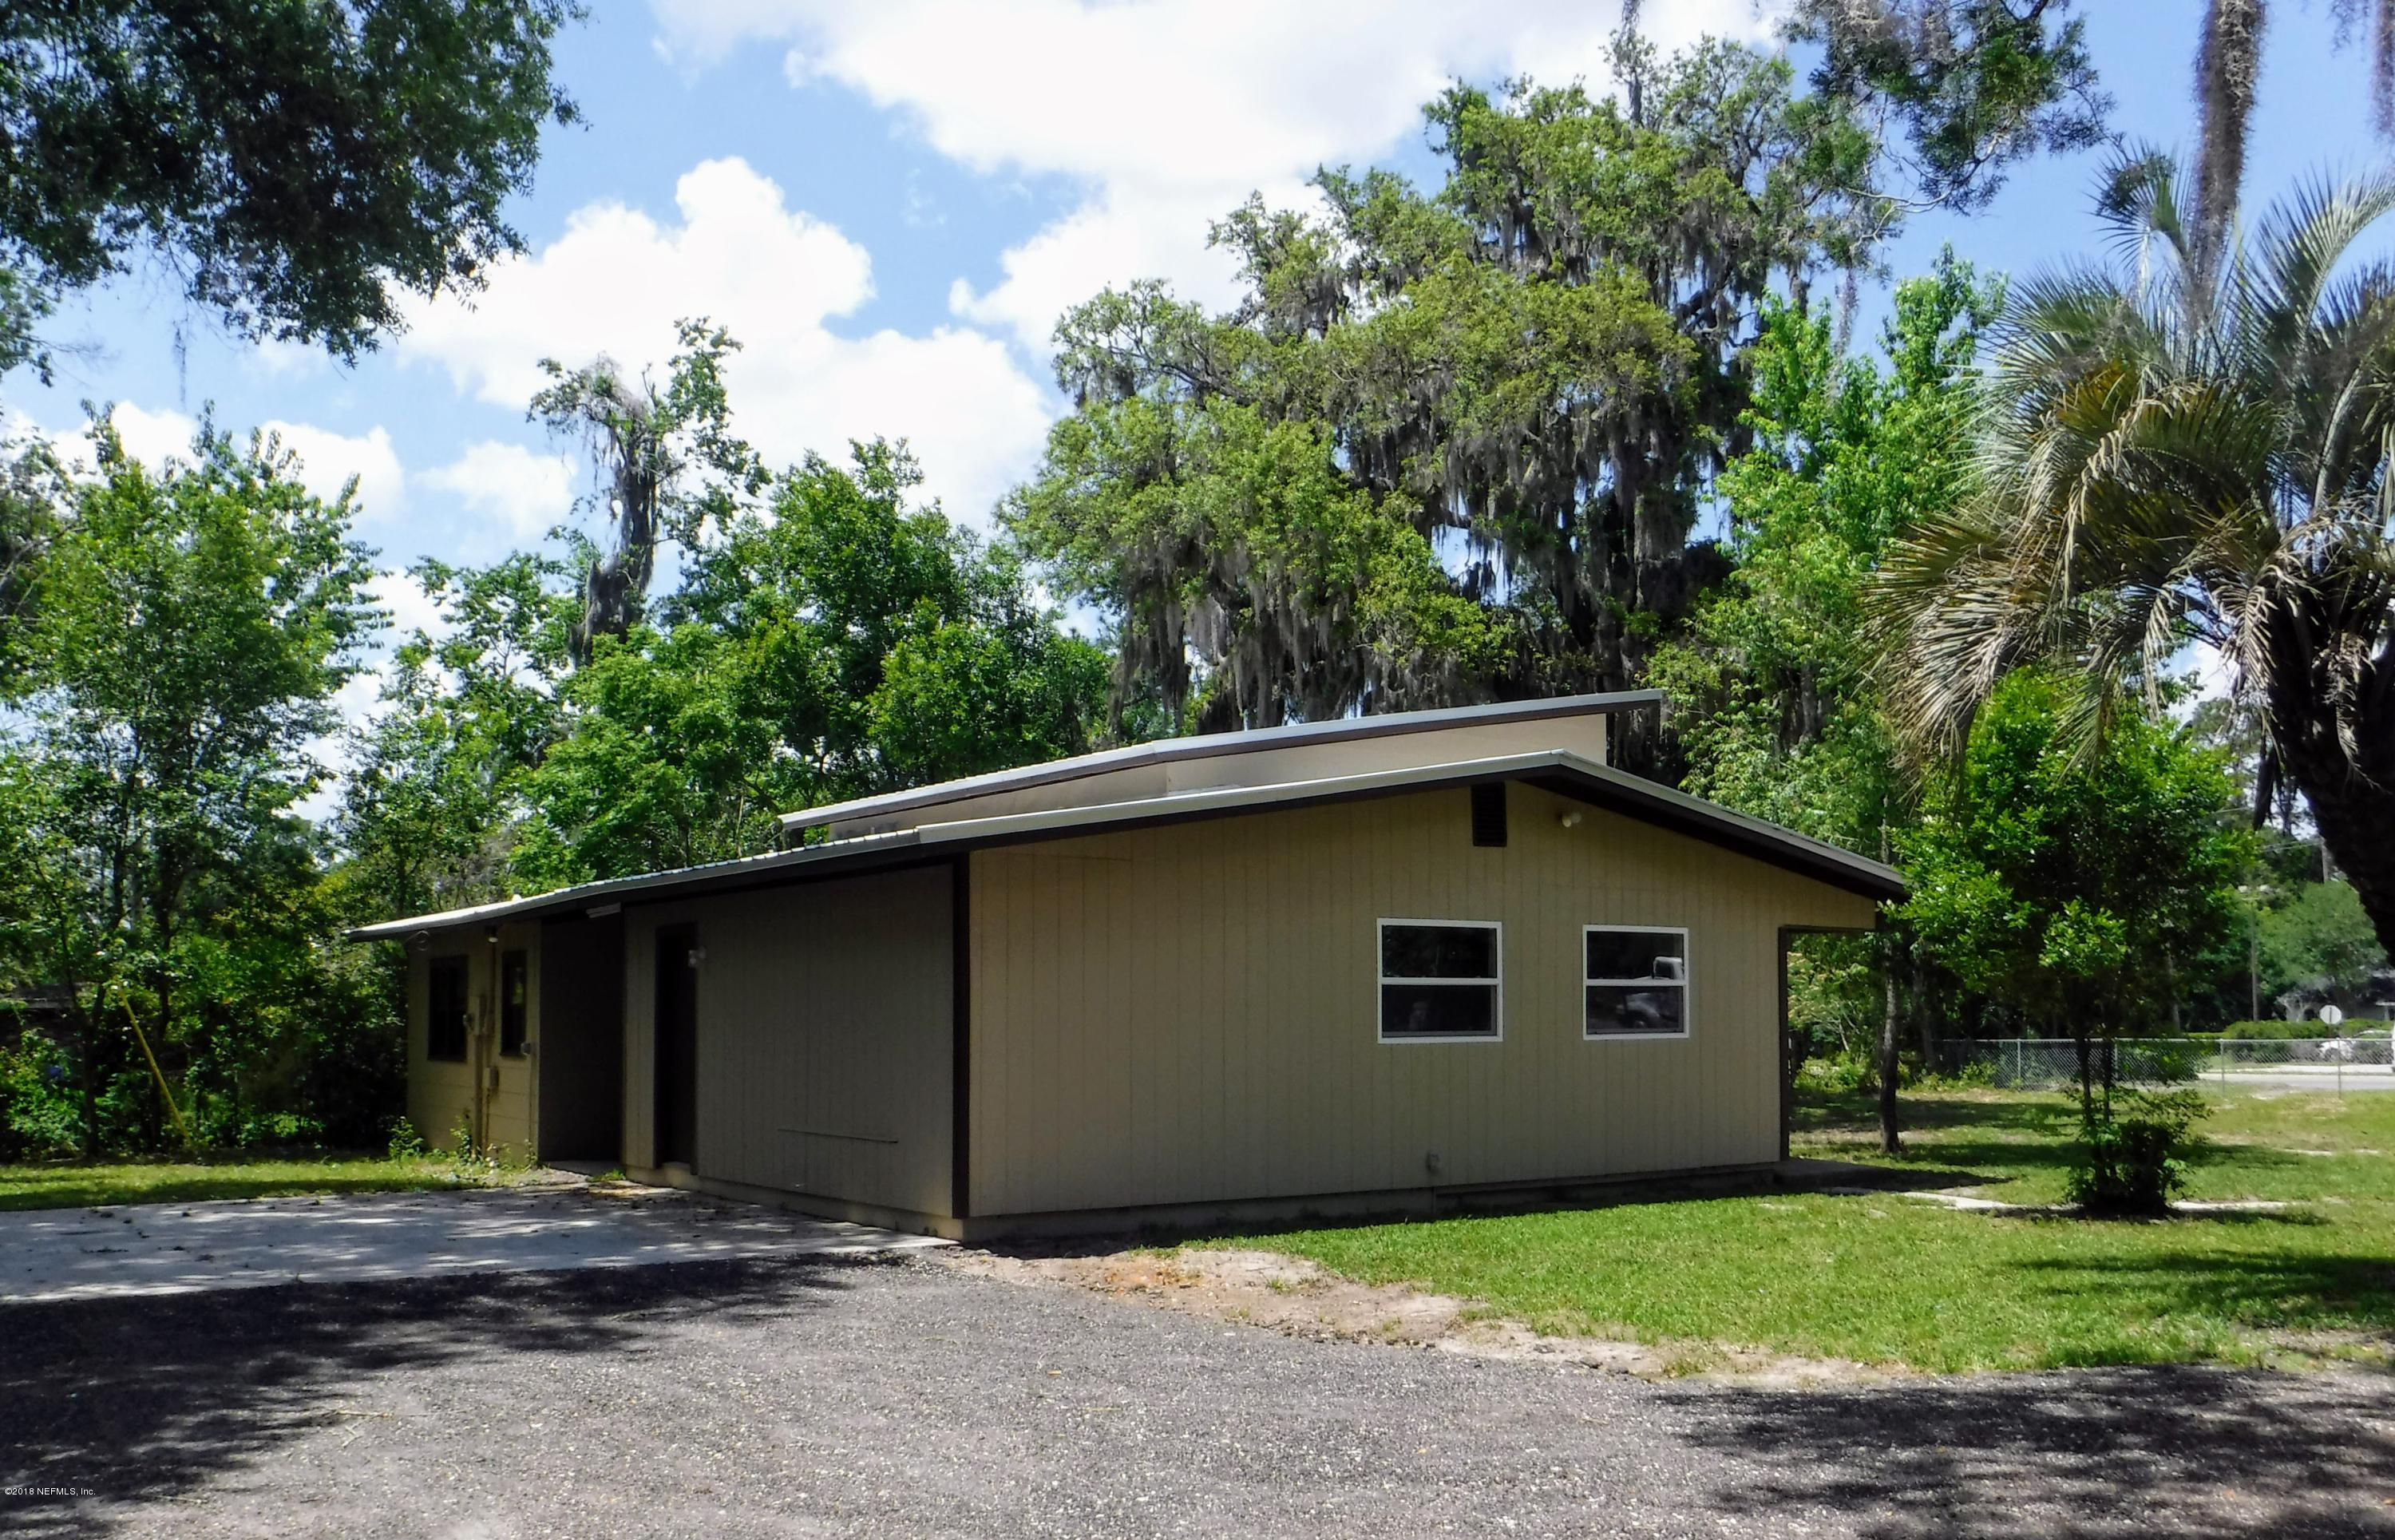 3309 CRILL, PALATKA, FLORIDA 32177, 4 Bedrooms Bedrooms, ,2 BathroomsBathrooms,Residential - single family,For sale,CRILL,934360